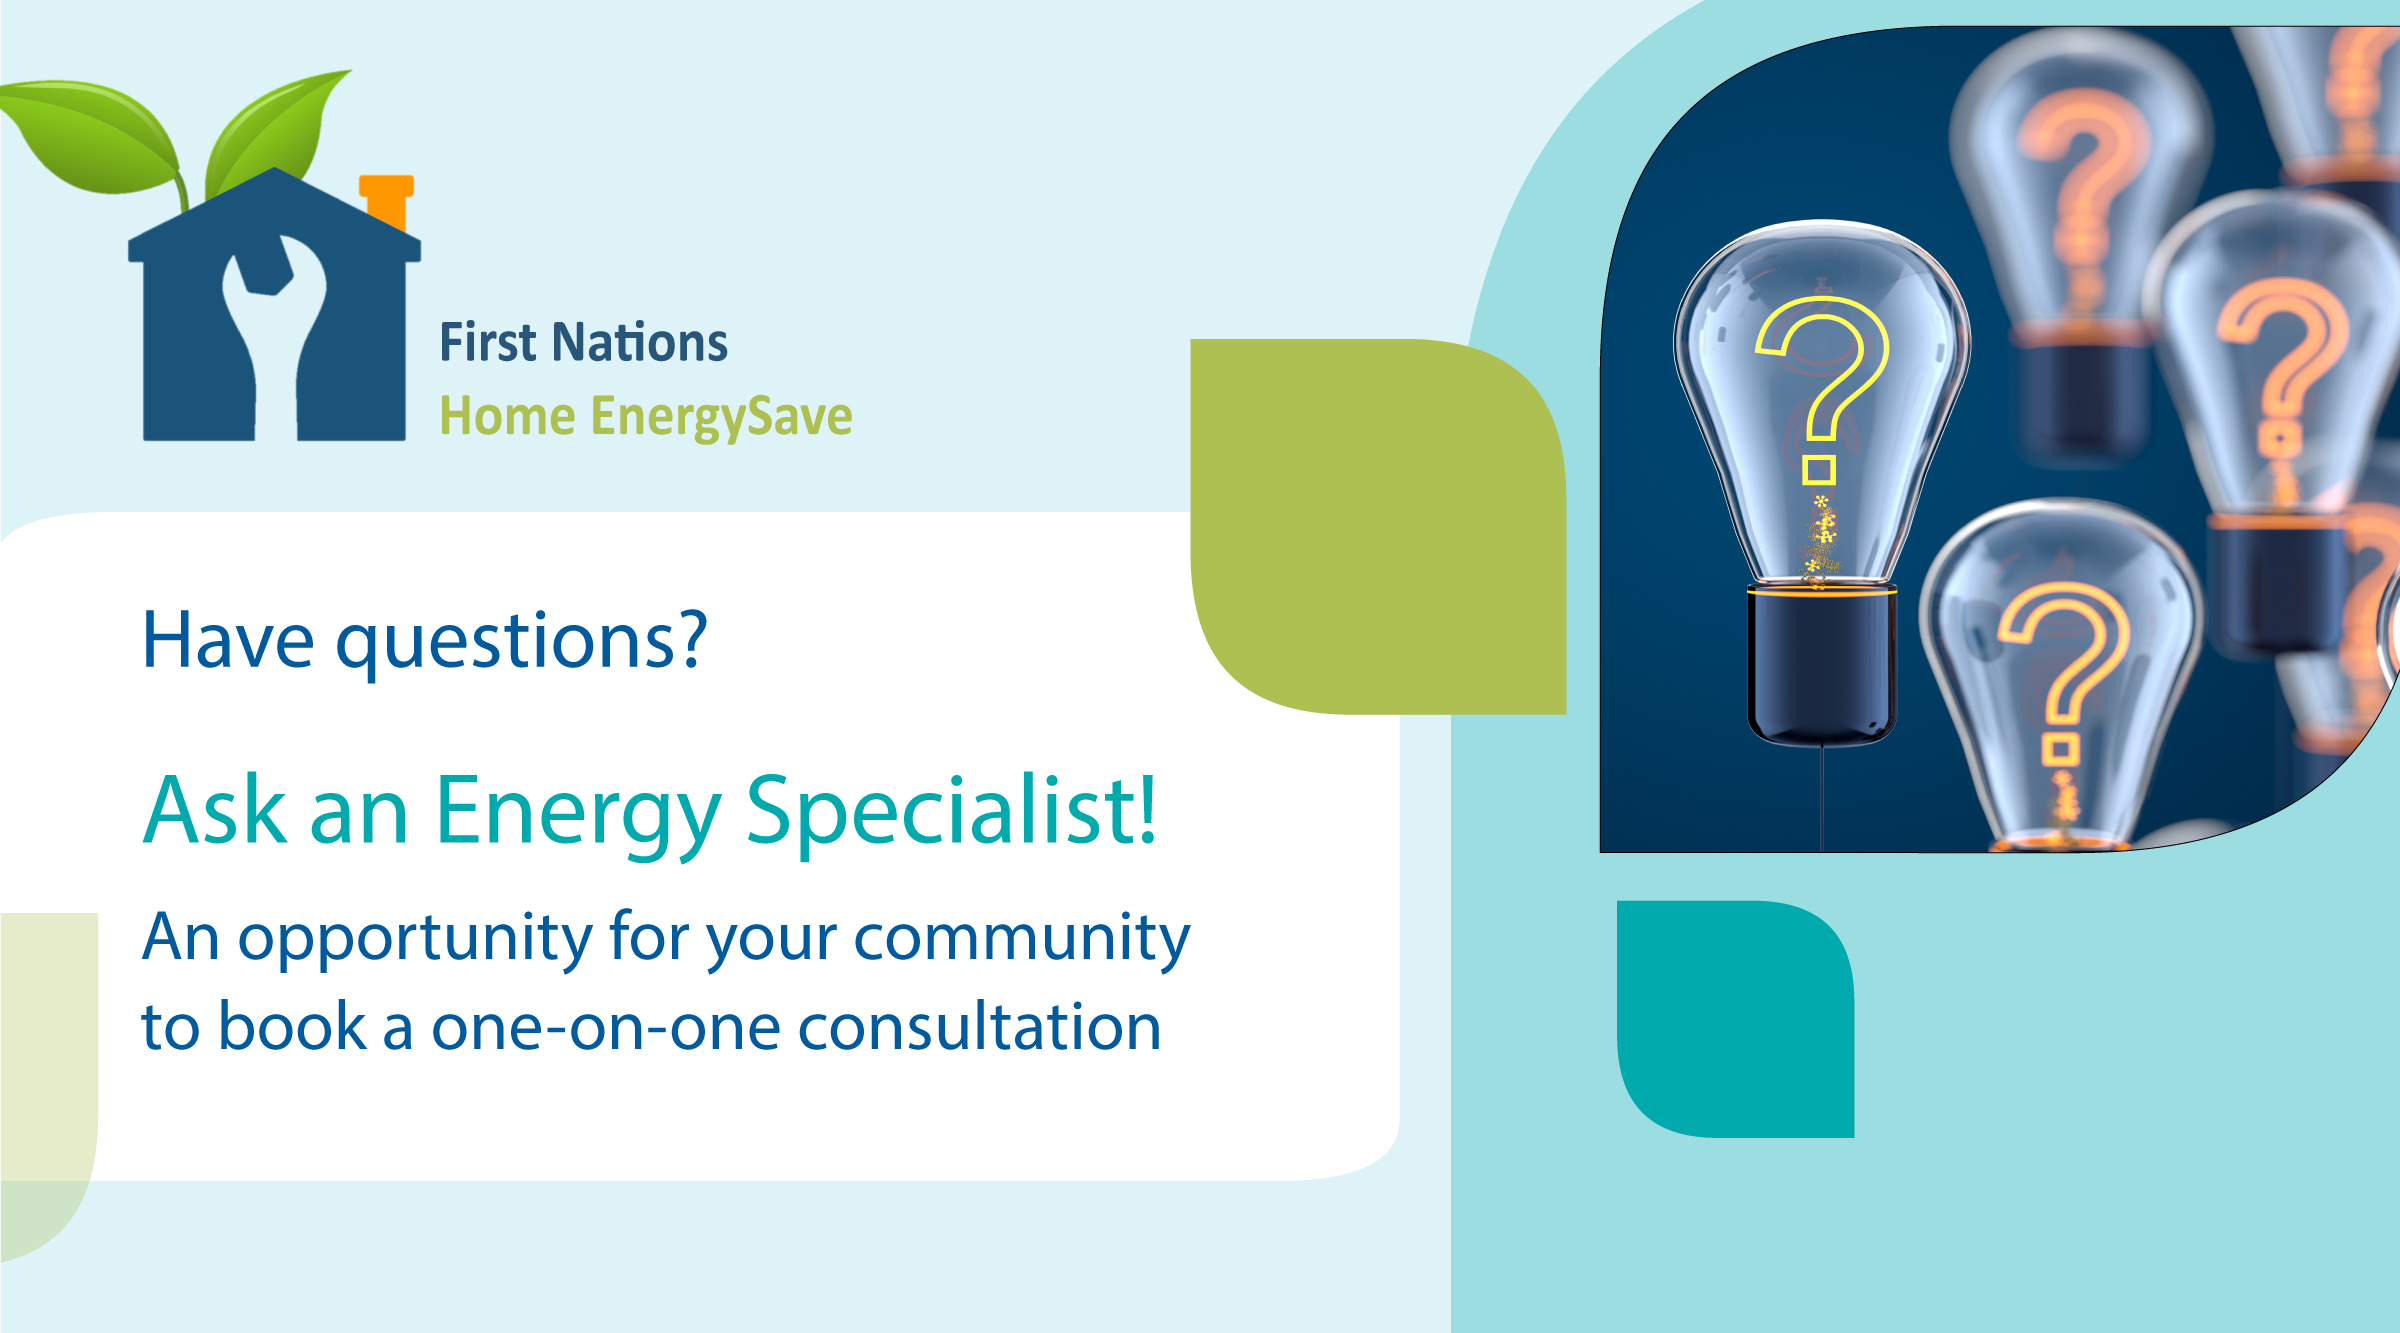 CCAQ_First_Nations_EnergySave/fnhes_ask_a_specialist.jpg